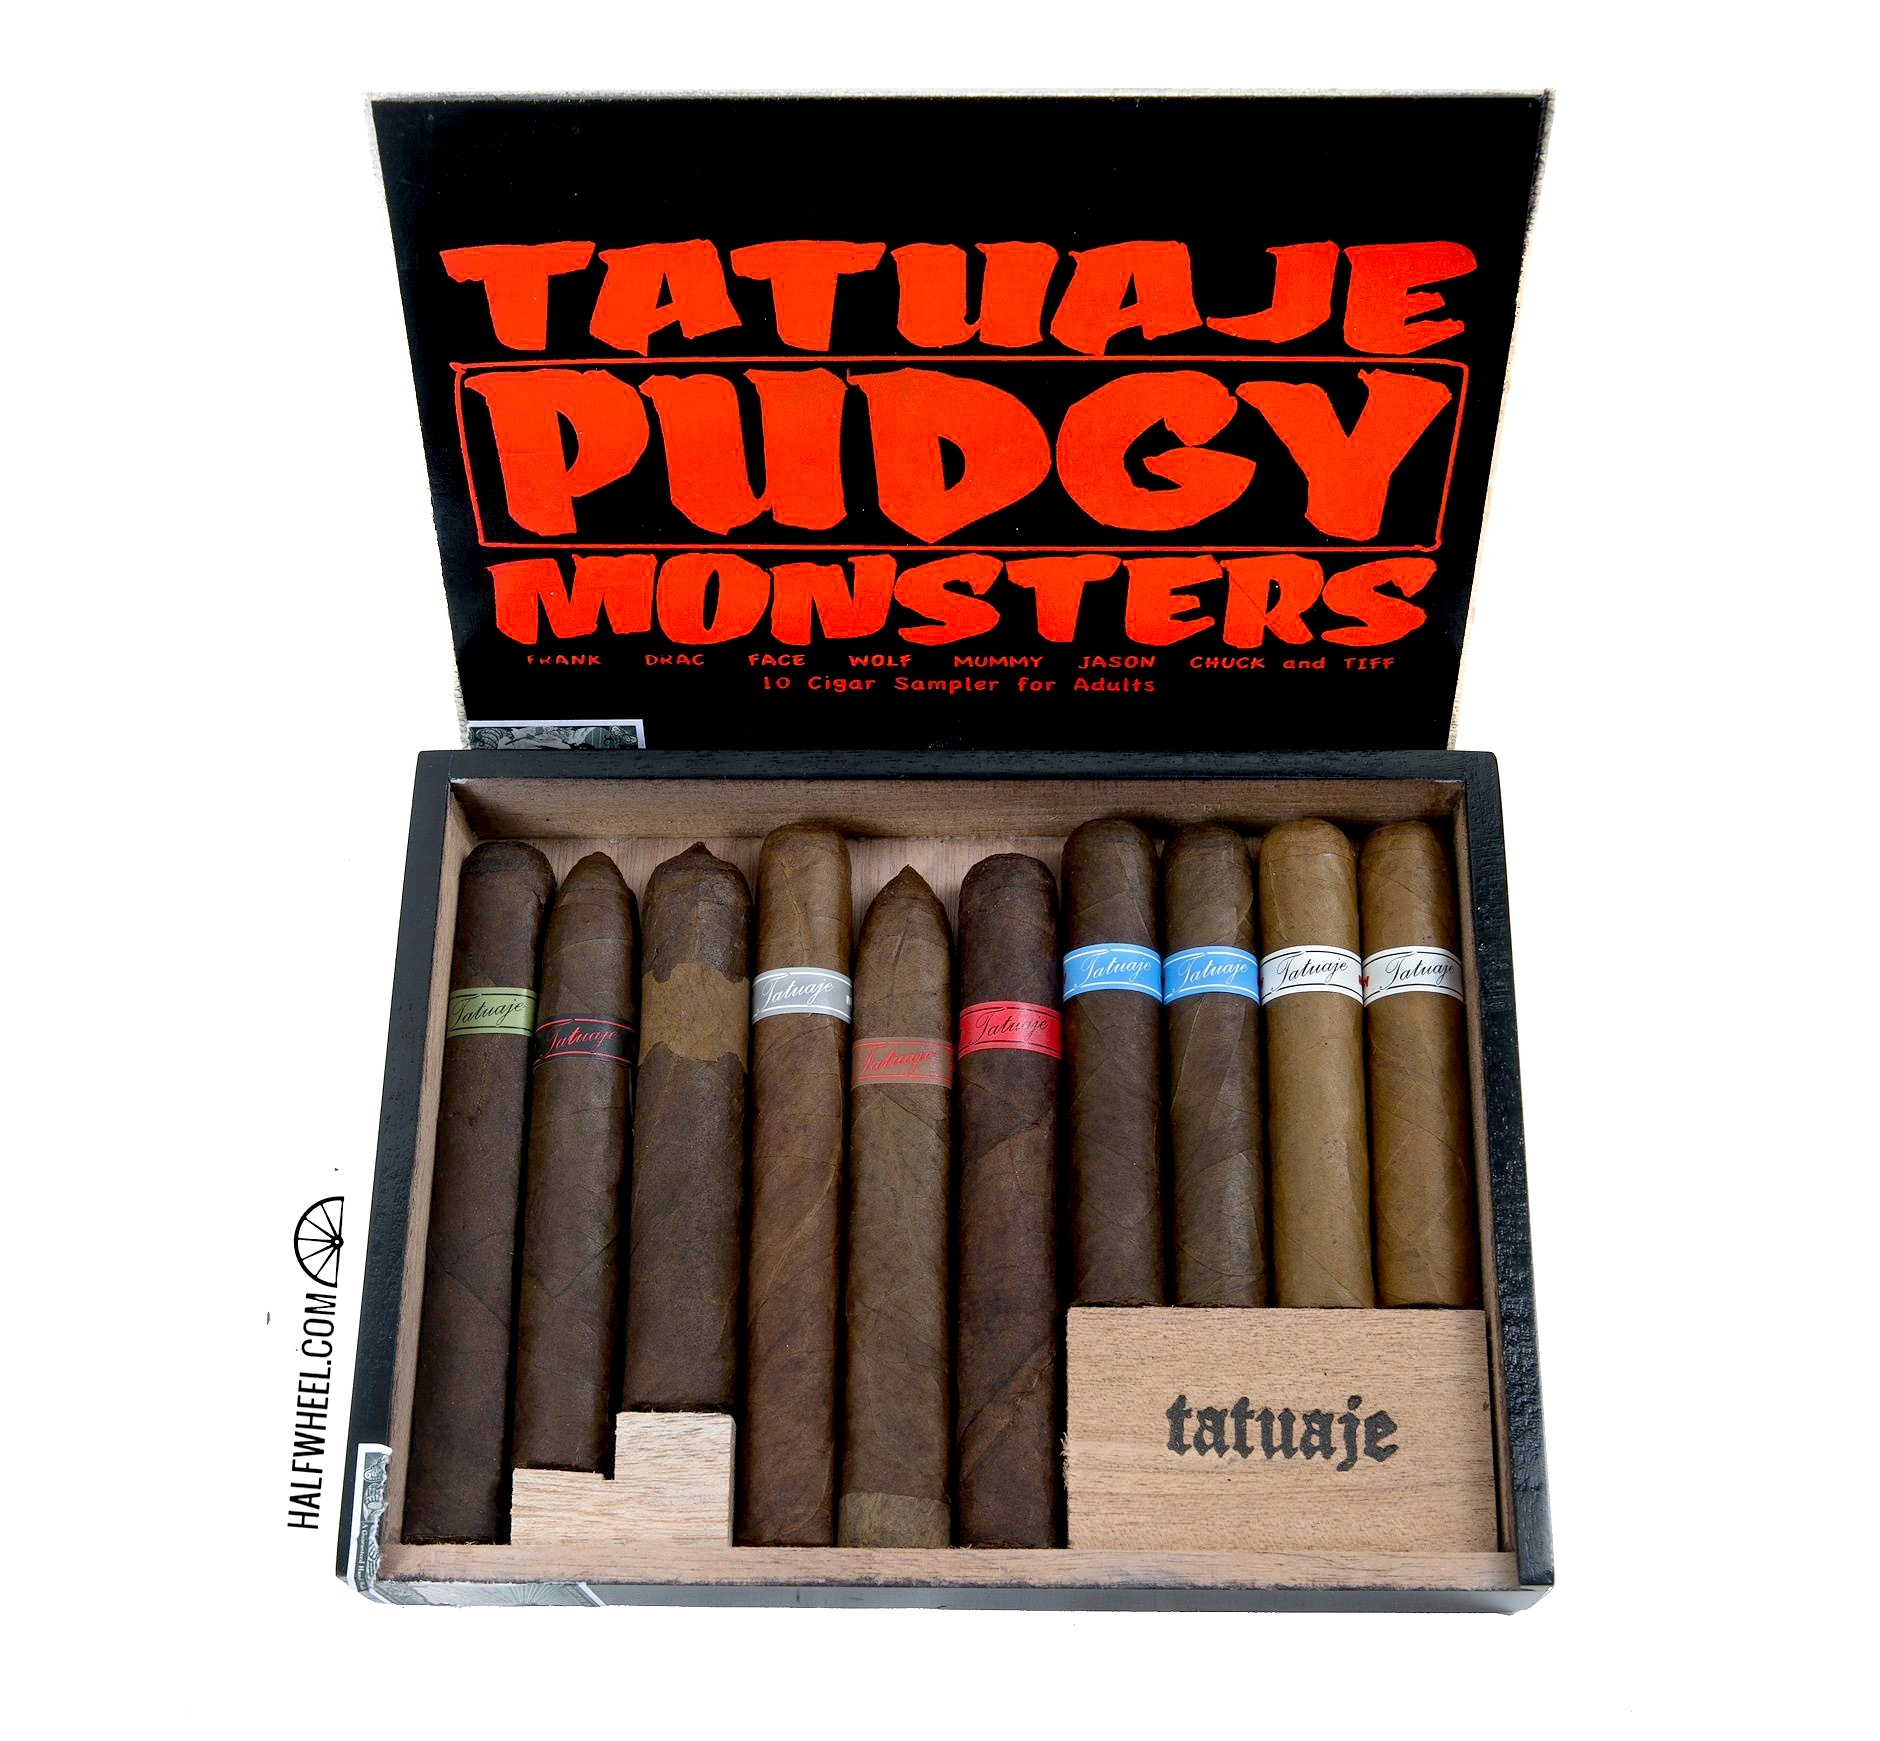 Tatuaje Pudgy Monsters Box 2